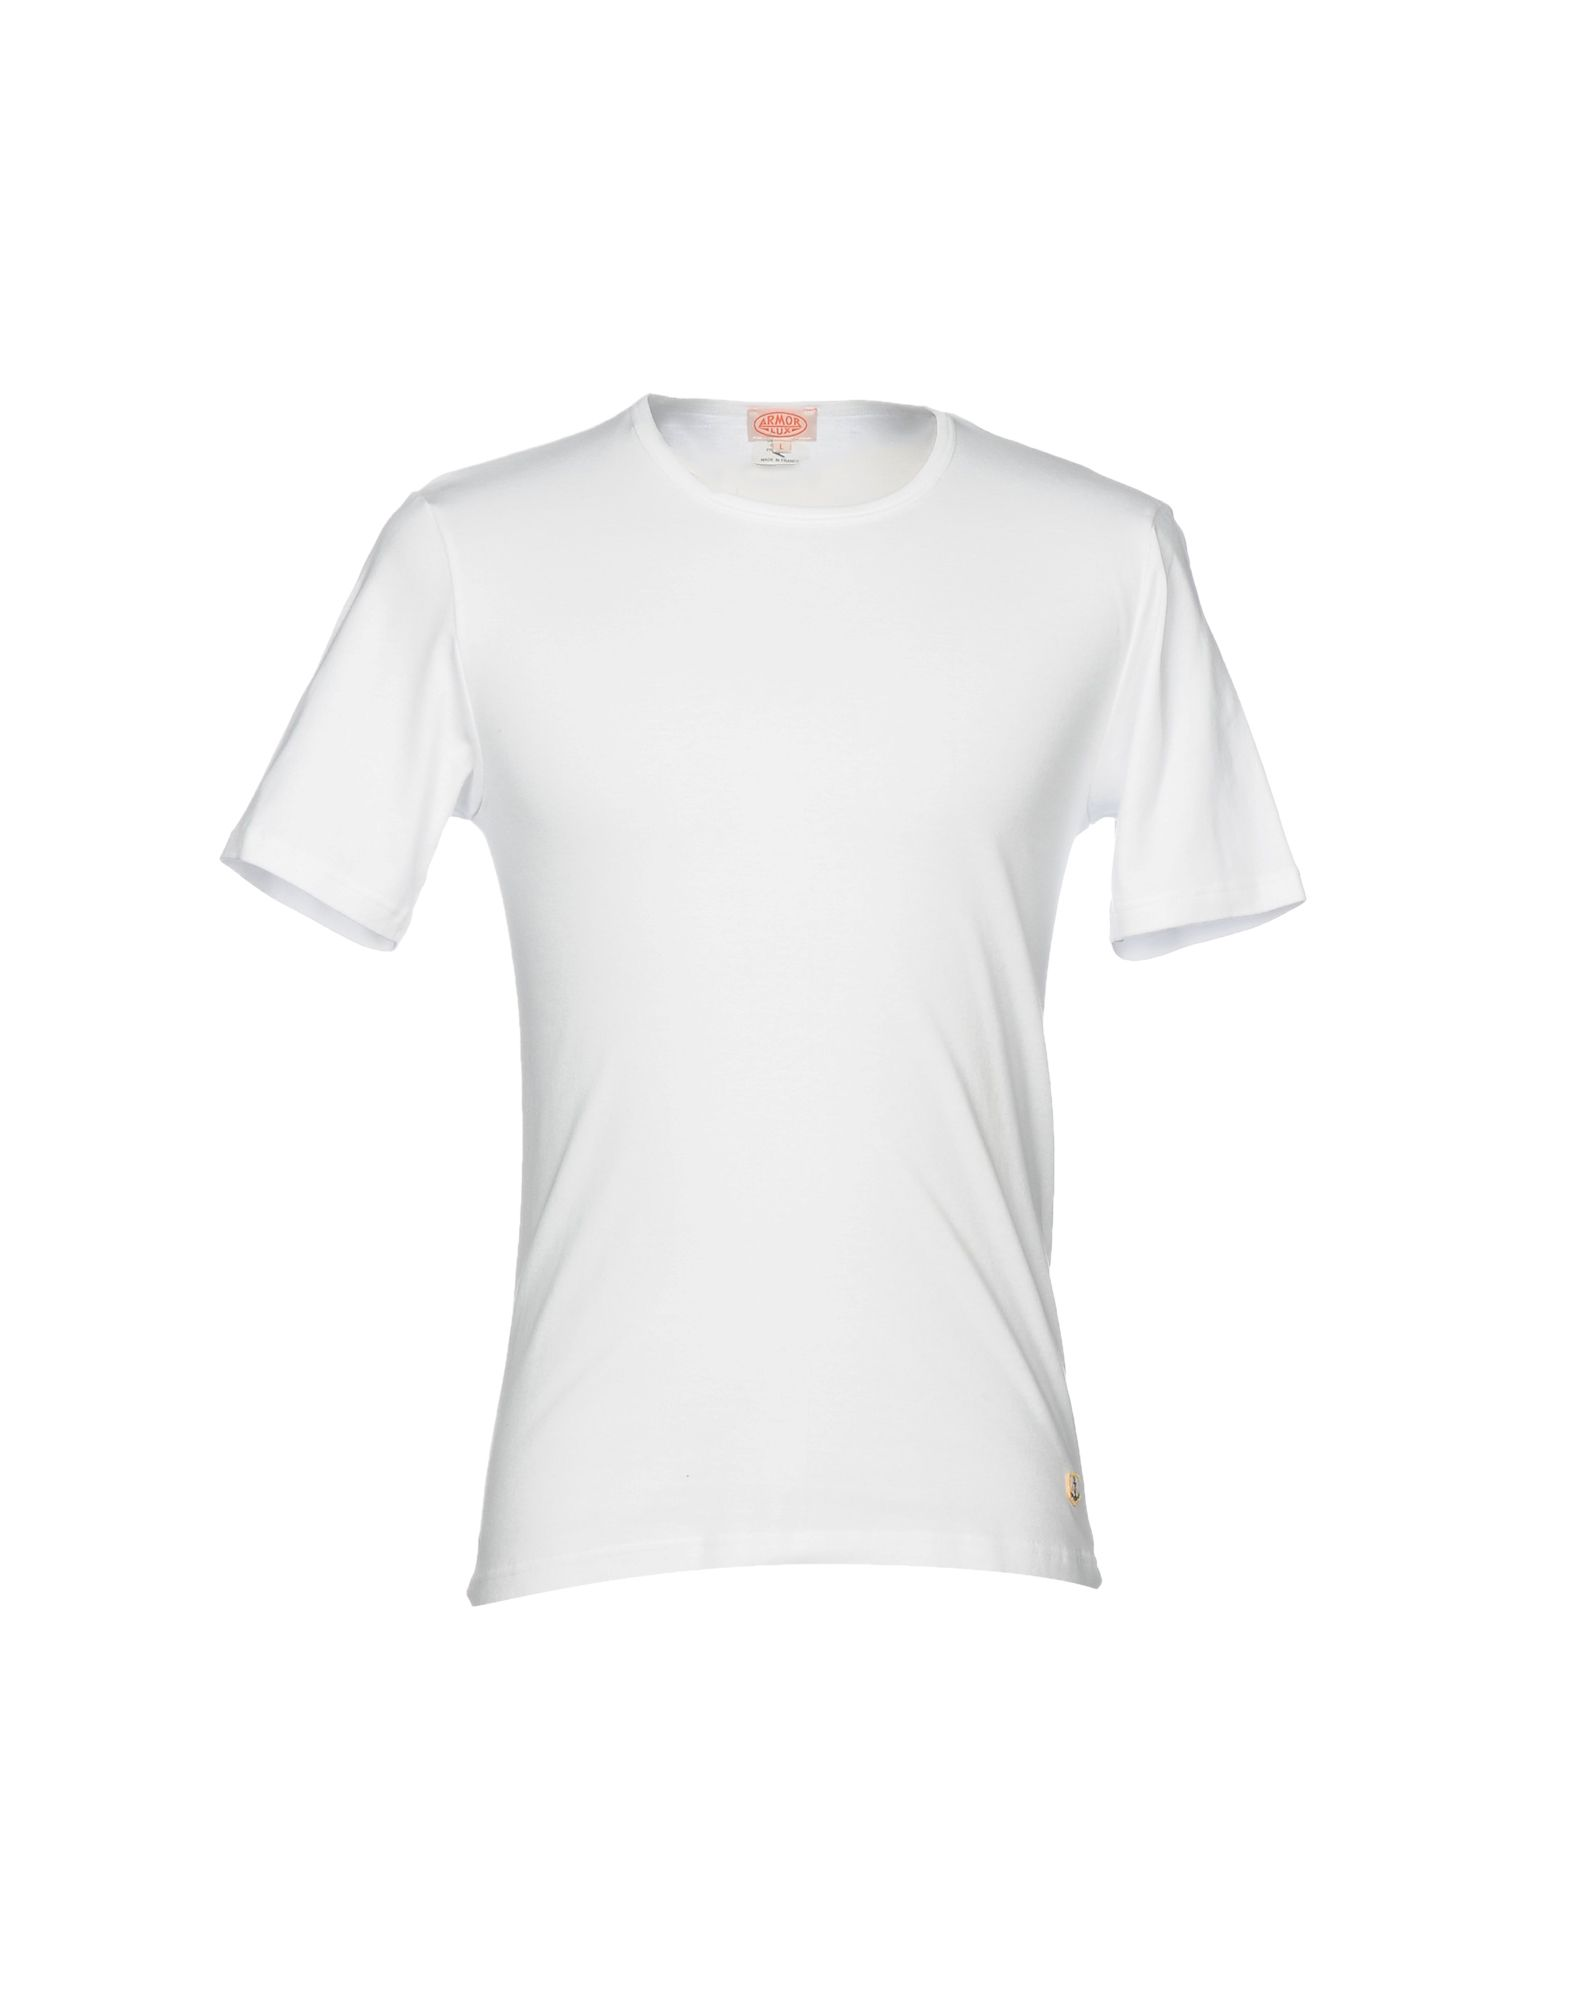 ARMOR-LUX T-Shirt in White